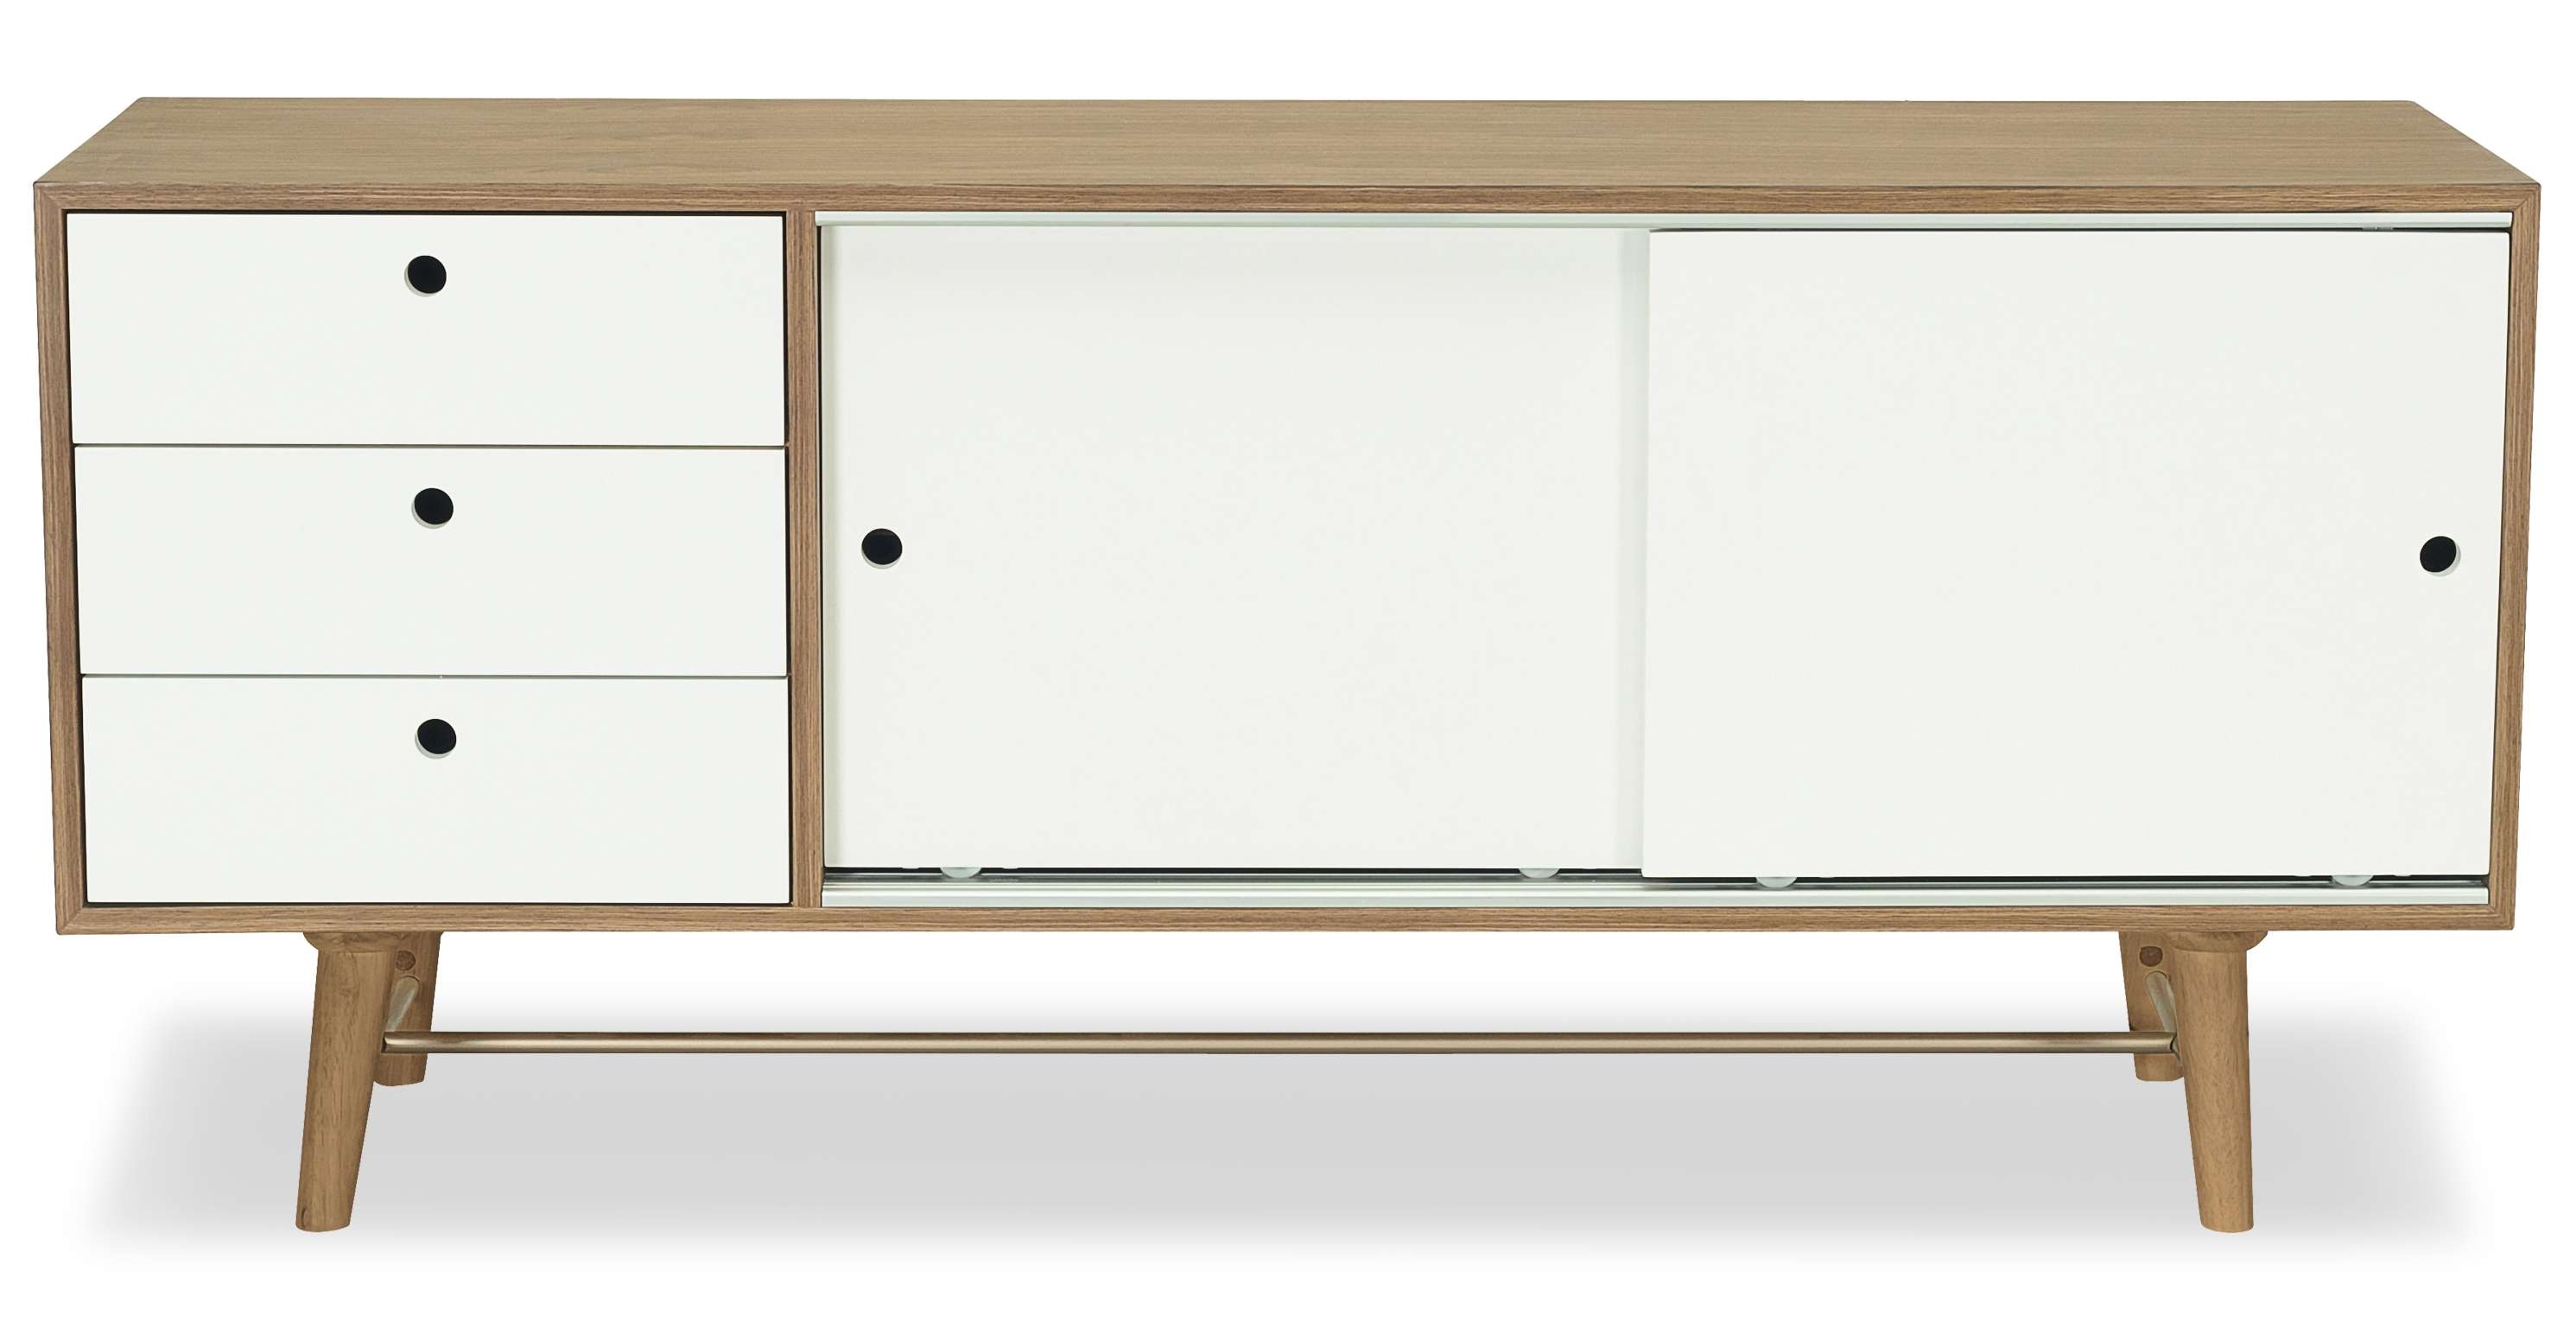 Braden Sideboard, Walnut And White Fern & Grey Throughout Sideboards (View 3 of 20)